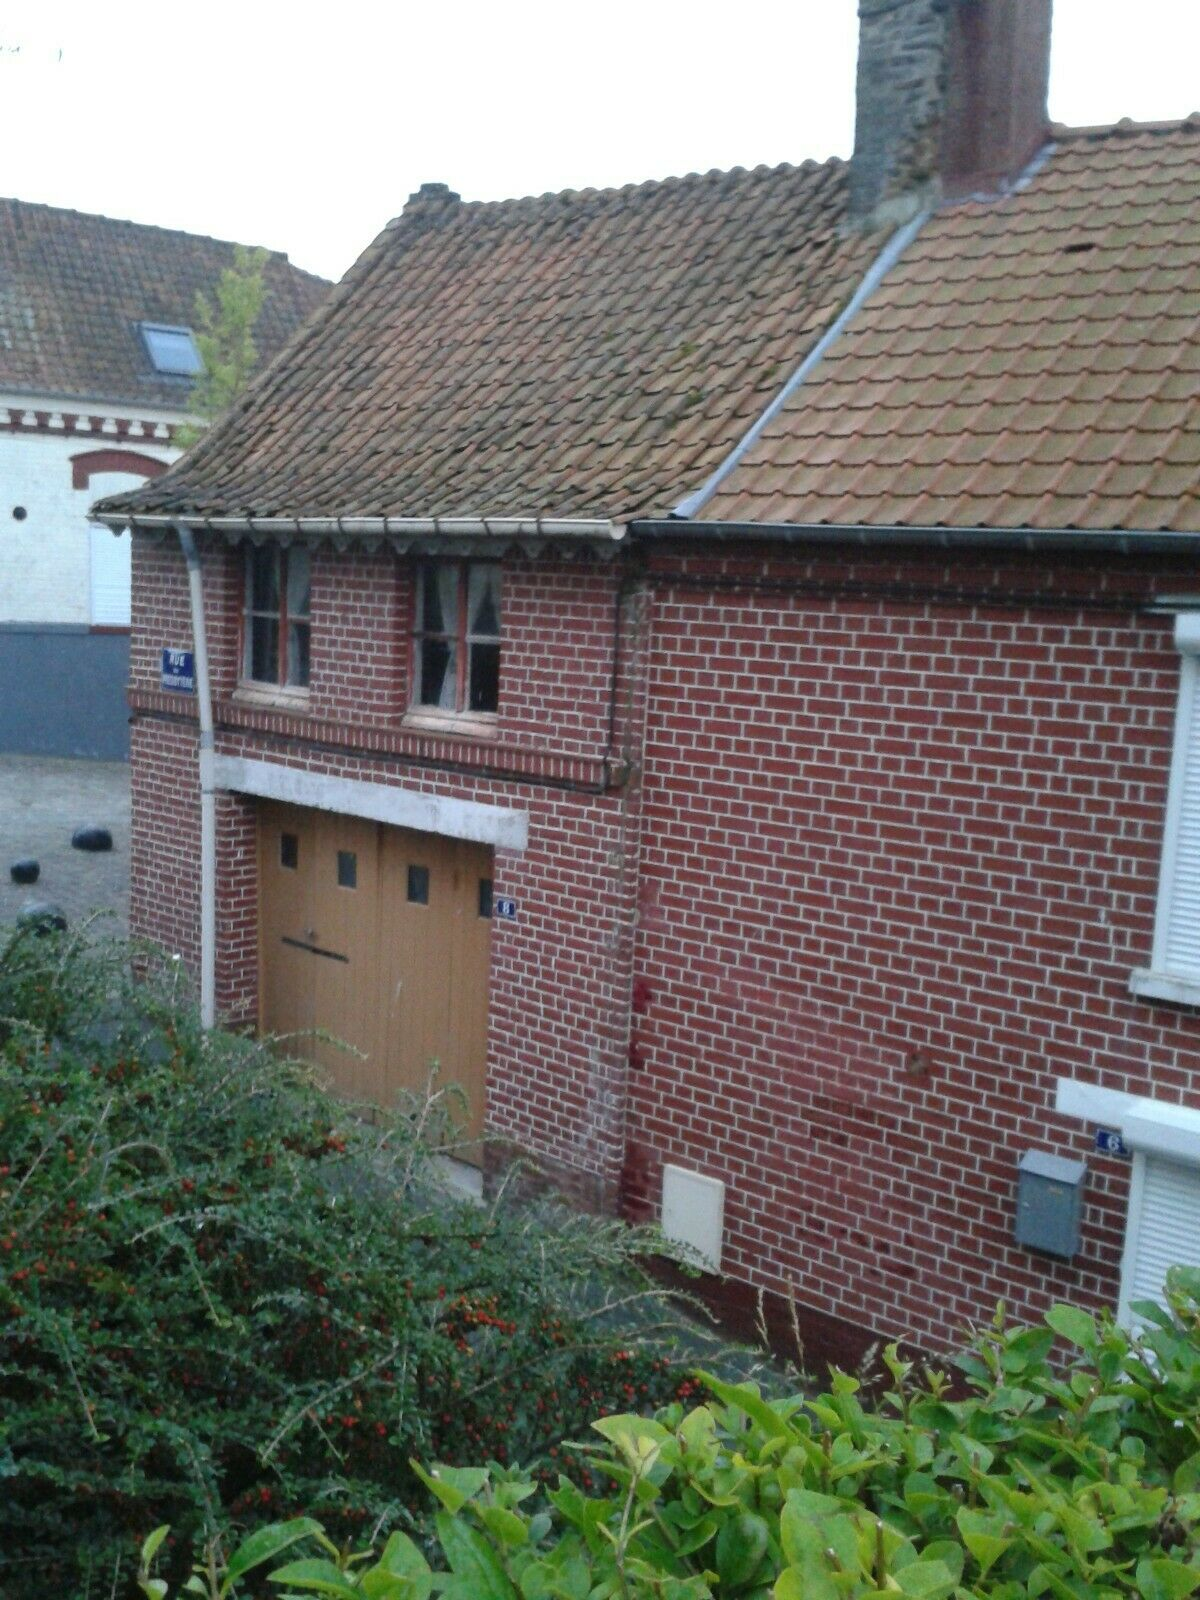 2X1870's FRENCH TOWN HOUSES FOR SALE - DEPT 62 - PART-RESTORED FOR COMPLETION.